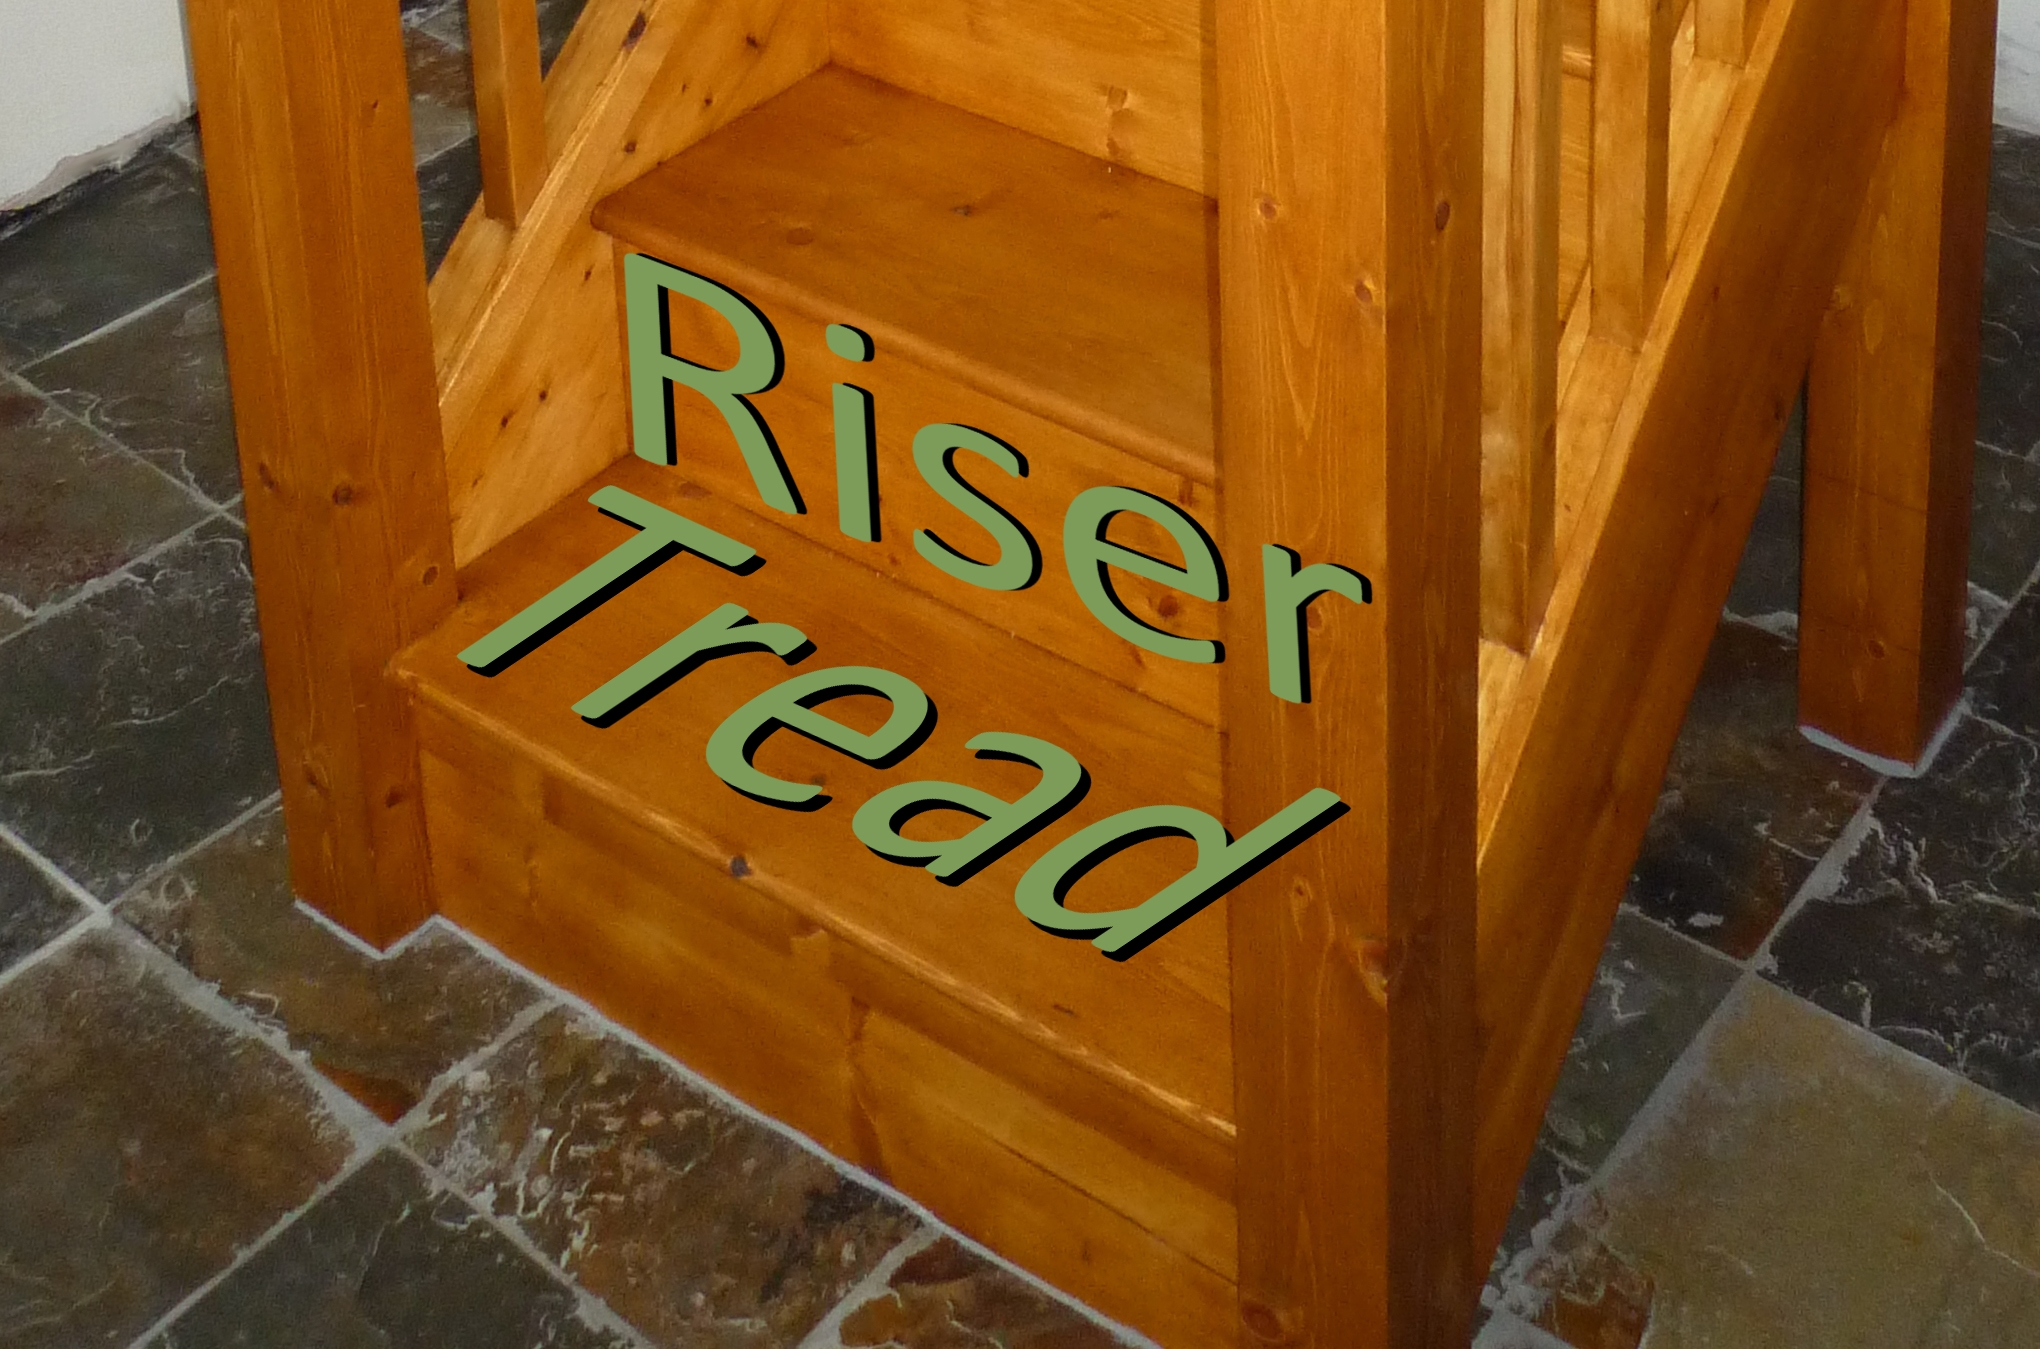 Treads and risers